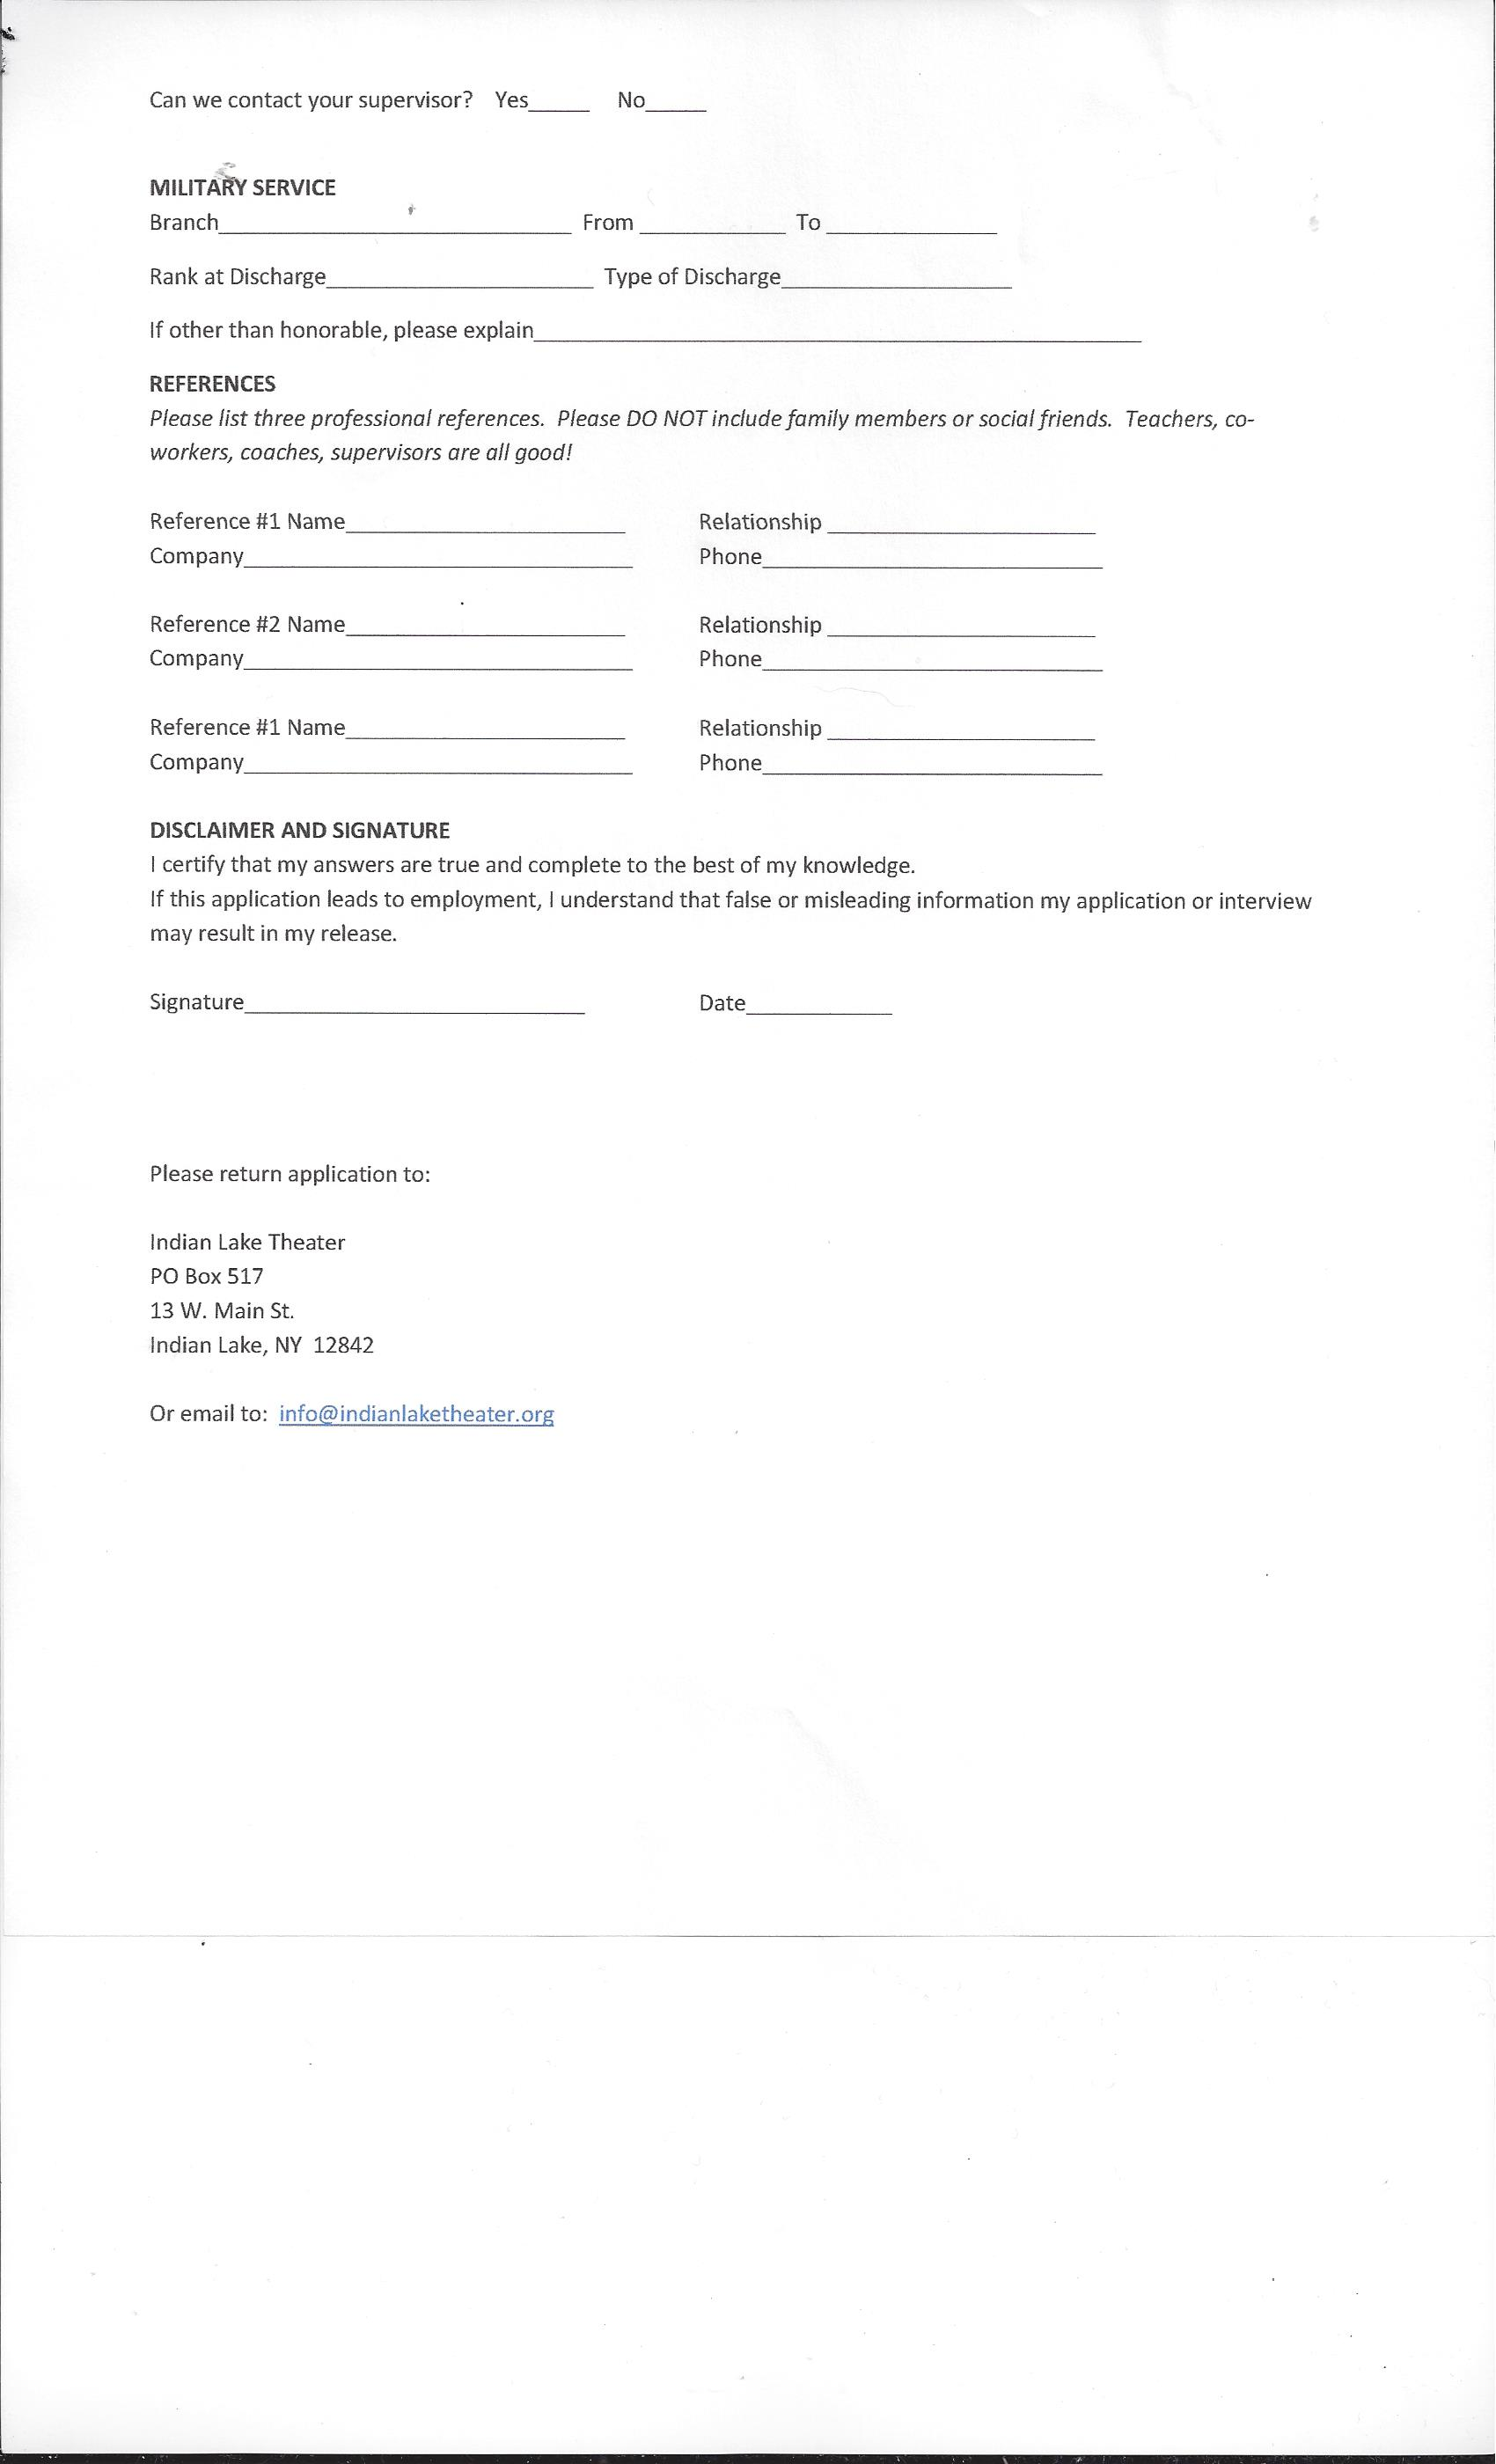 APPLICATION PAGE 2-2.jpg